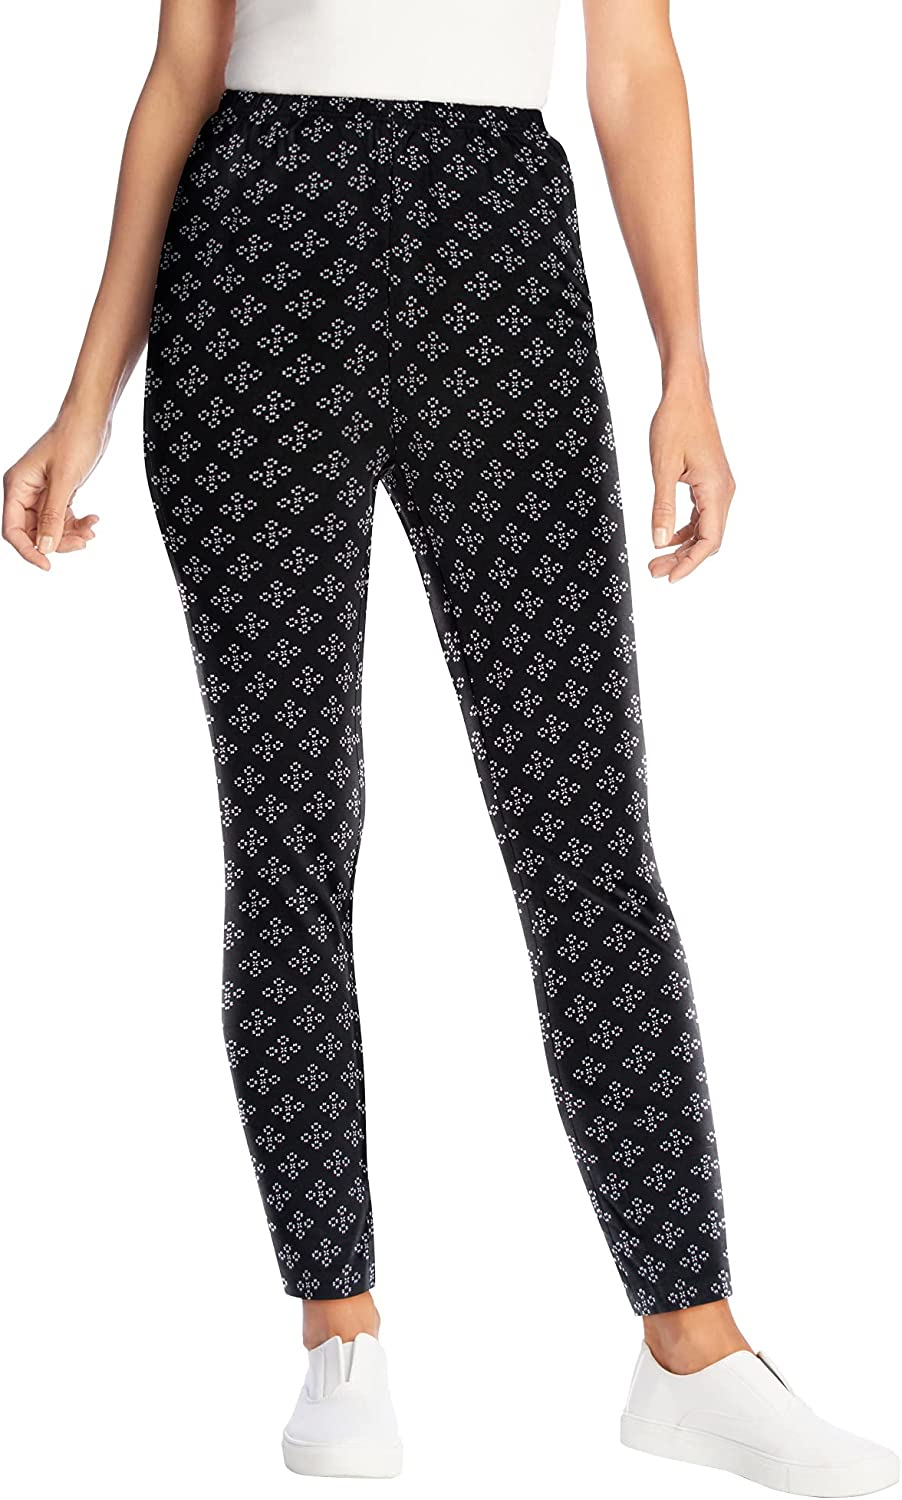 Woman Within All items in the store Women's Plus Size Legging Popular brand in the world Cotton Stretch Printed